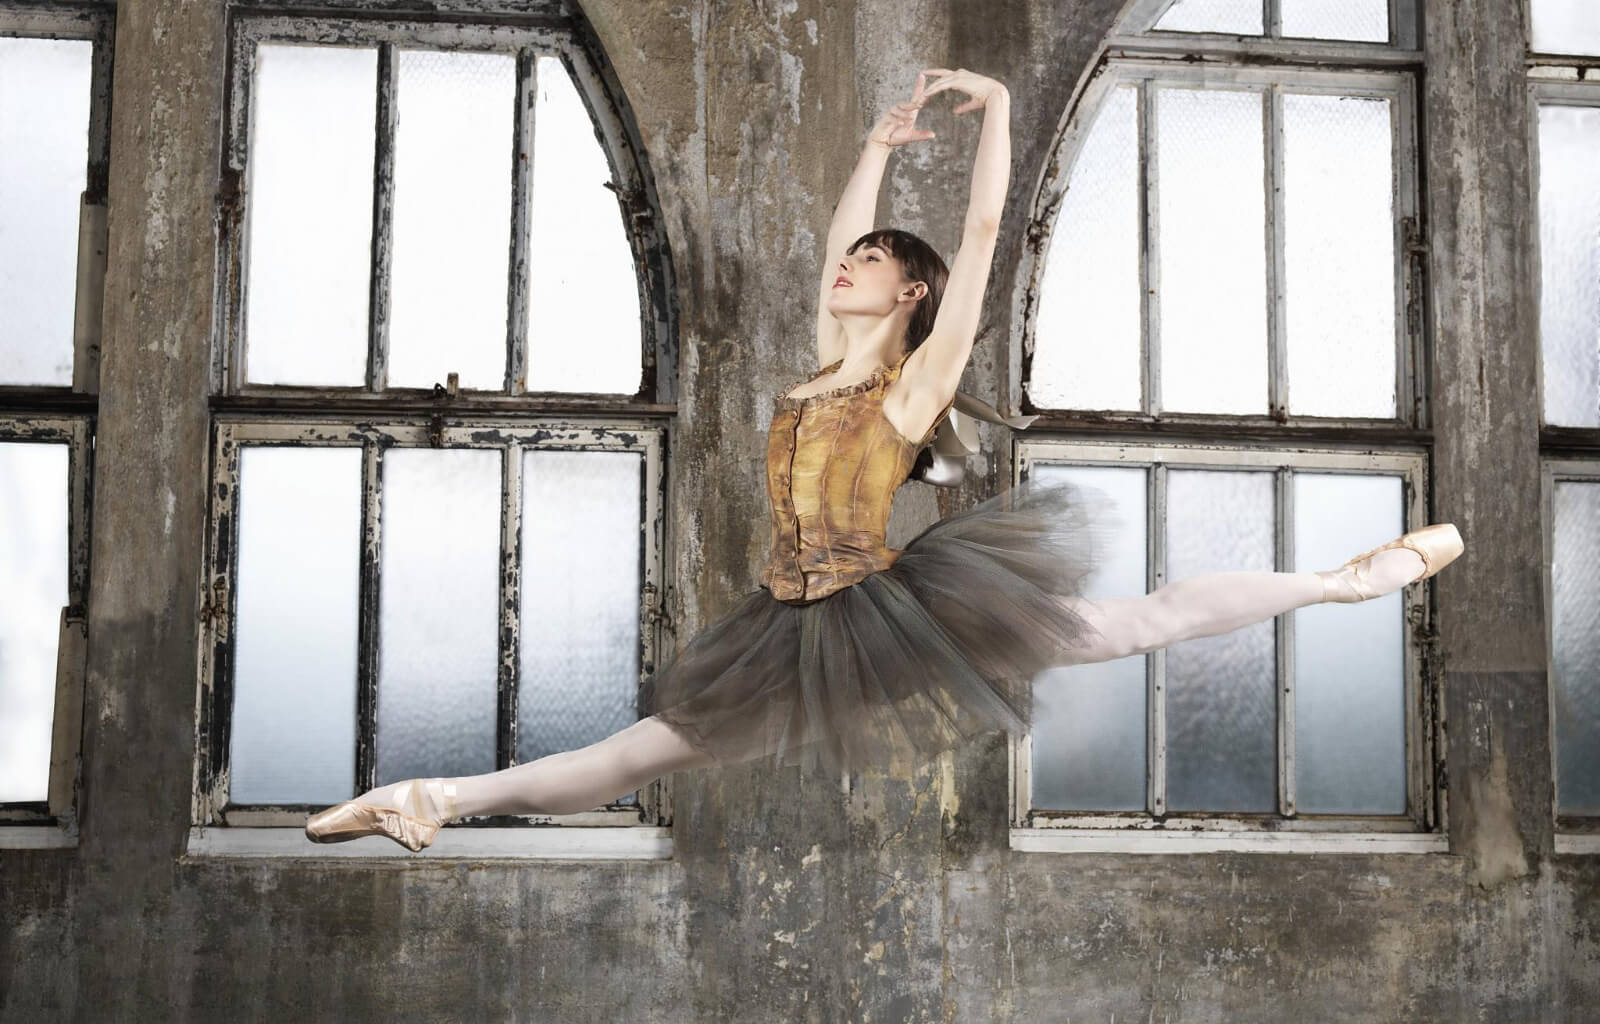 Marie (Tiler Peck) dancing a Grande Jeté from the musical, Little Dancer. She is wearing the exact costume from the Degas sculpture.